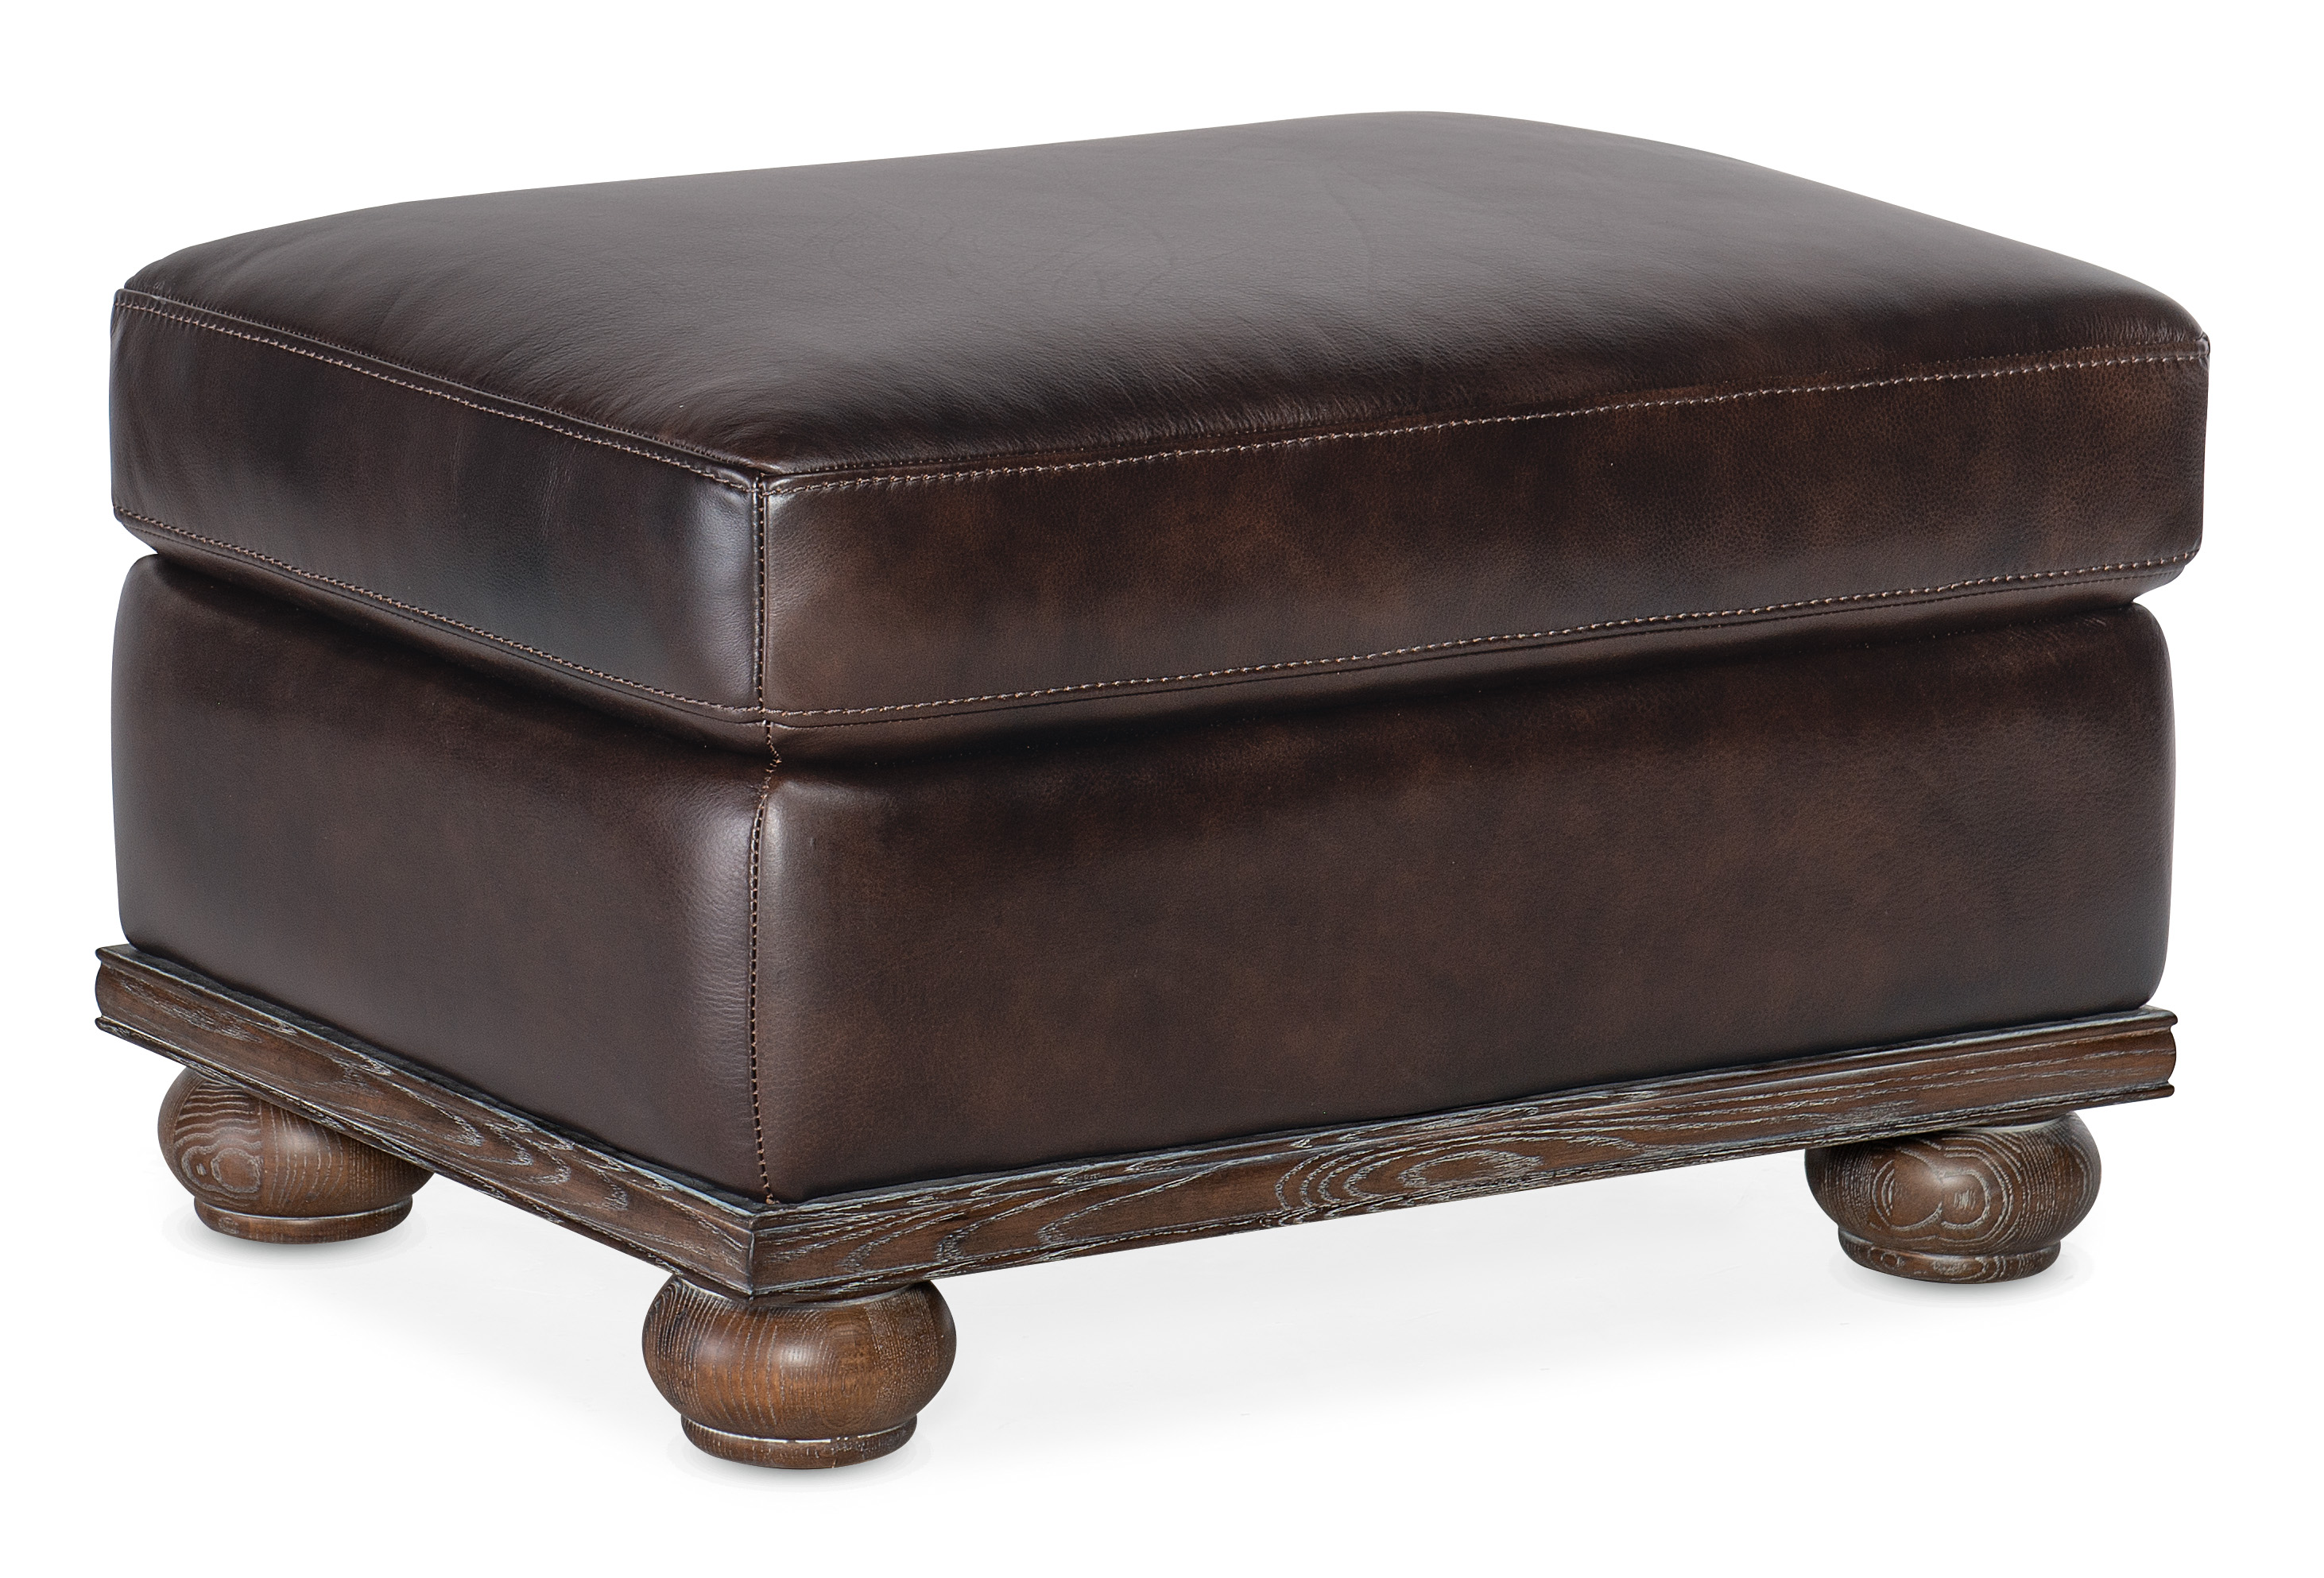 William Ottoman by Hooker Furniture at Fashion Furniture